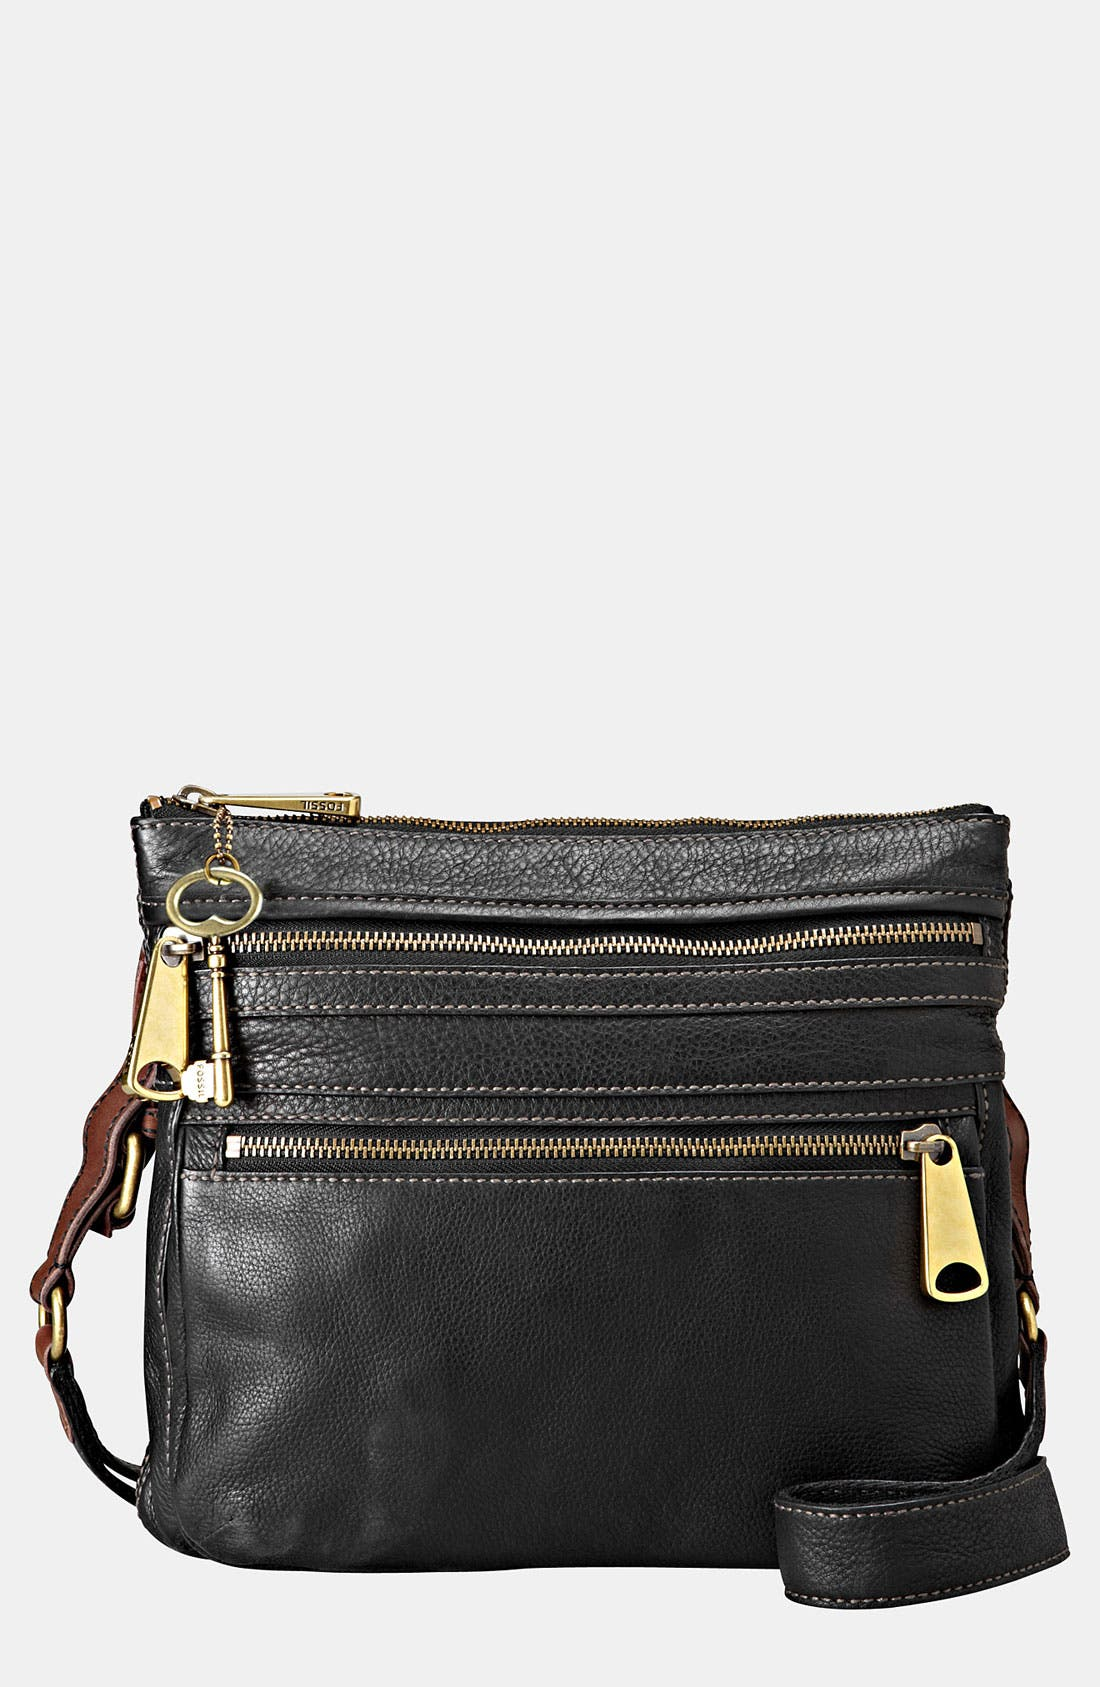 Alternate Image 1 Selected - Fossil 'Explorer' Crossbody Bag